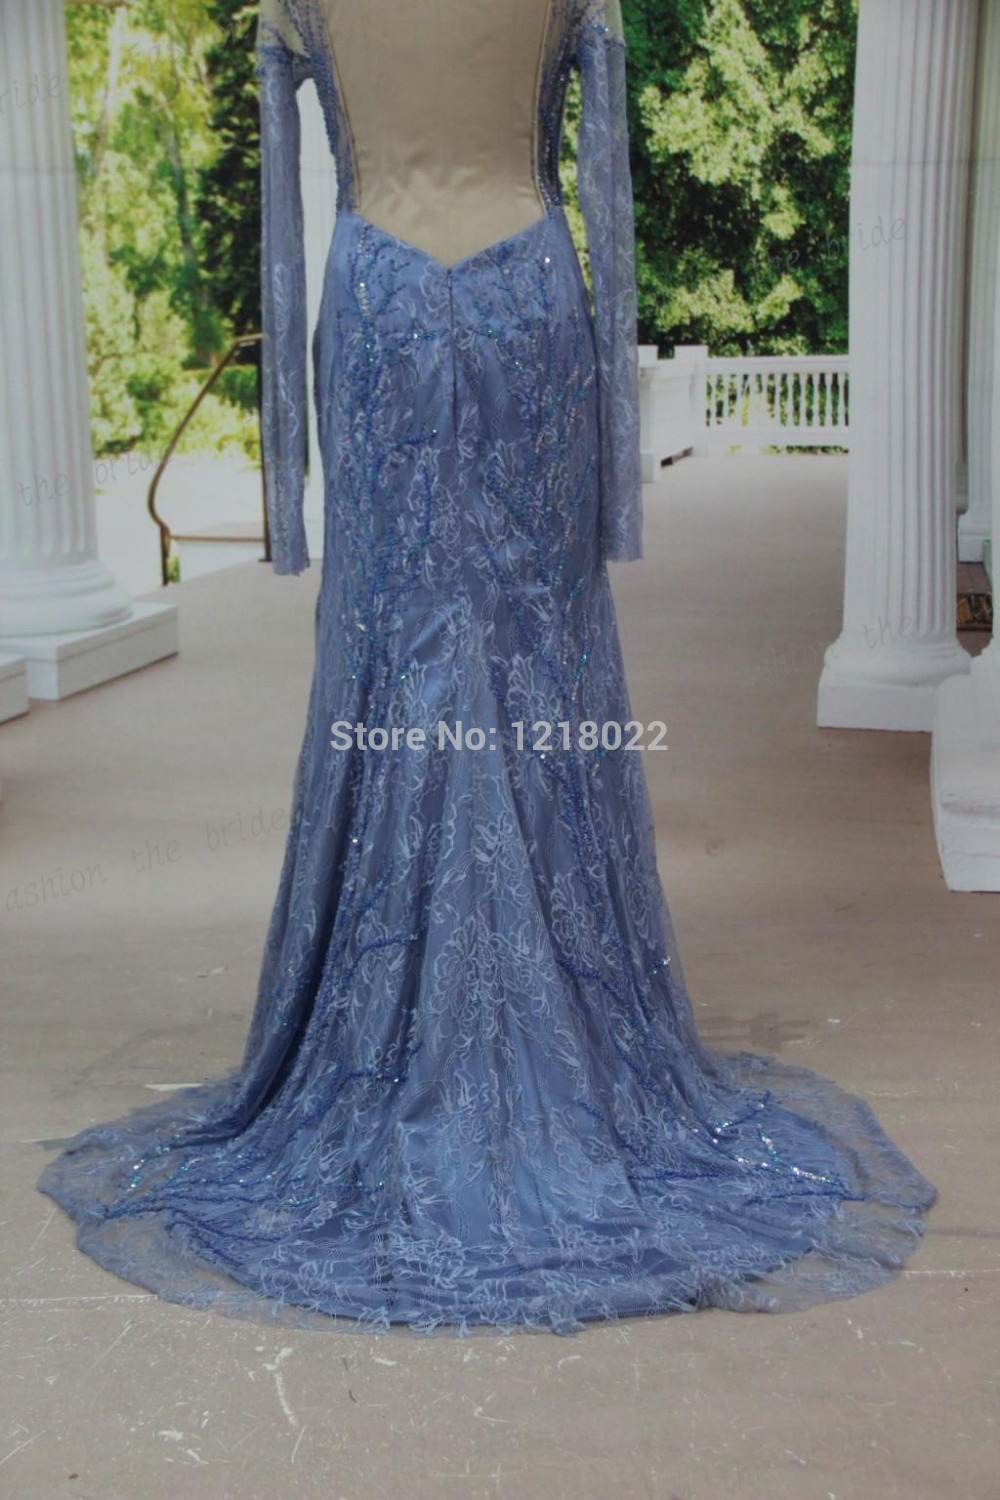 Evening Wear Dresses Uk Size Ladies Party African Dress Stores A ...